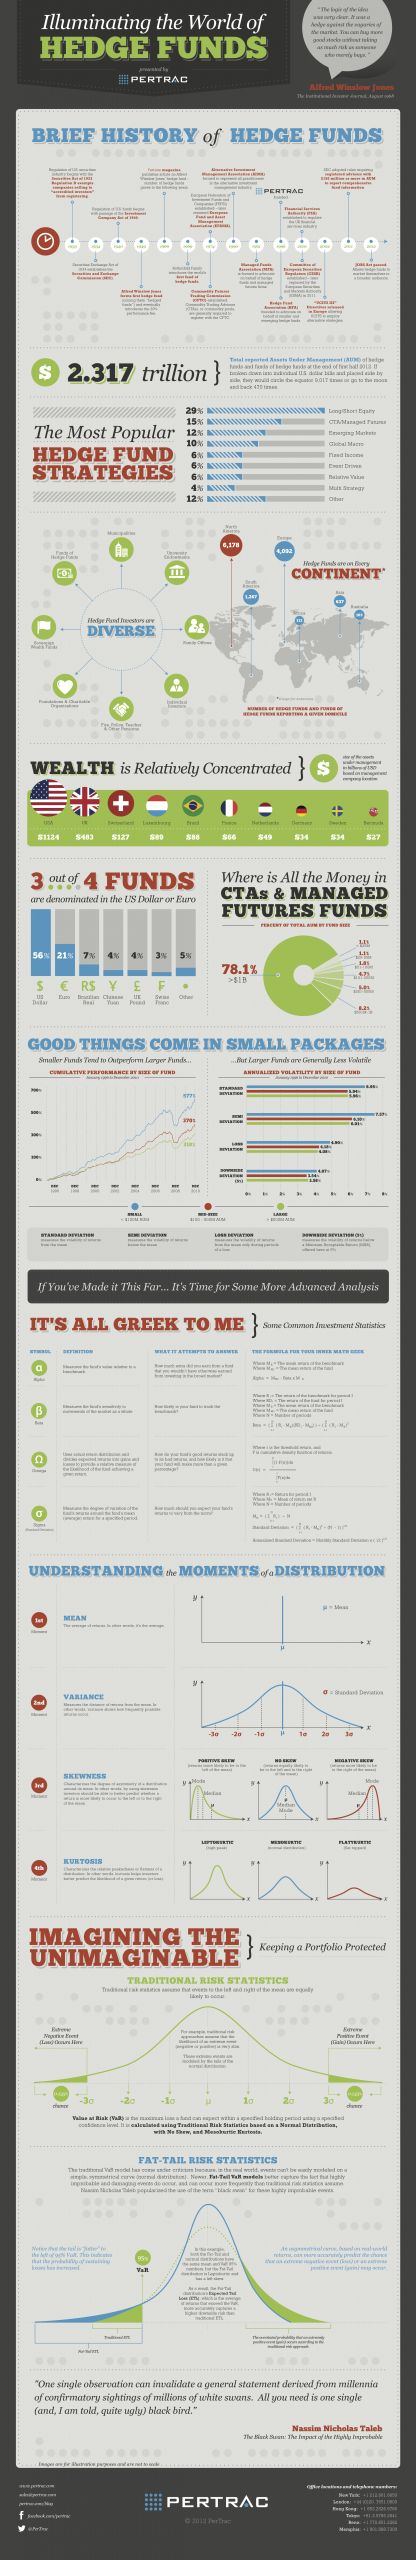 Almost everything you need to know about the world of hedge funds infographic  http://edderovic.com